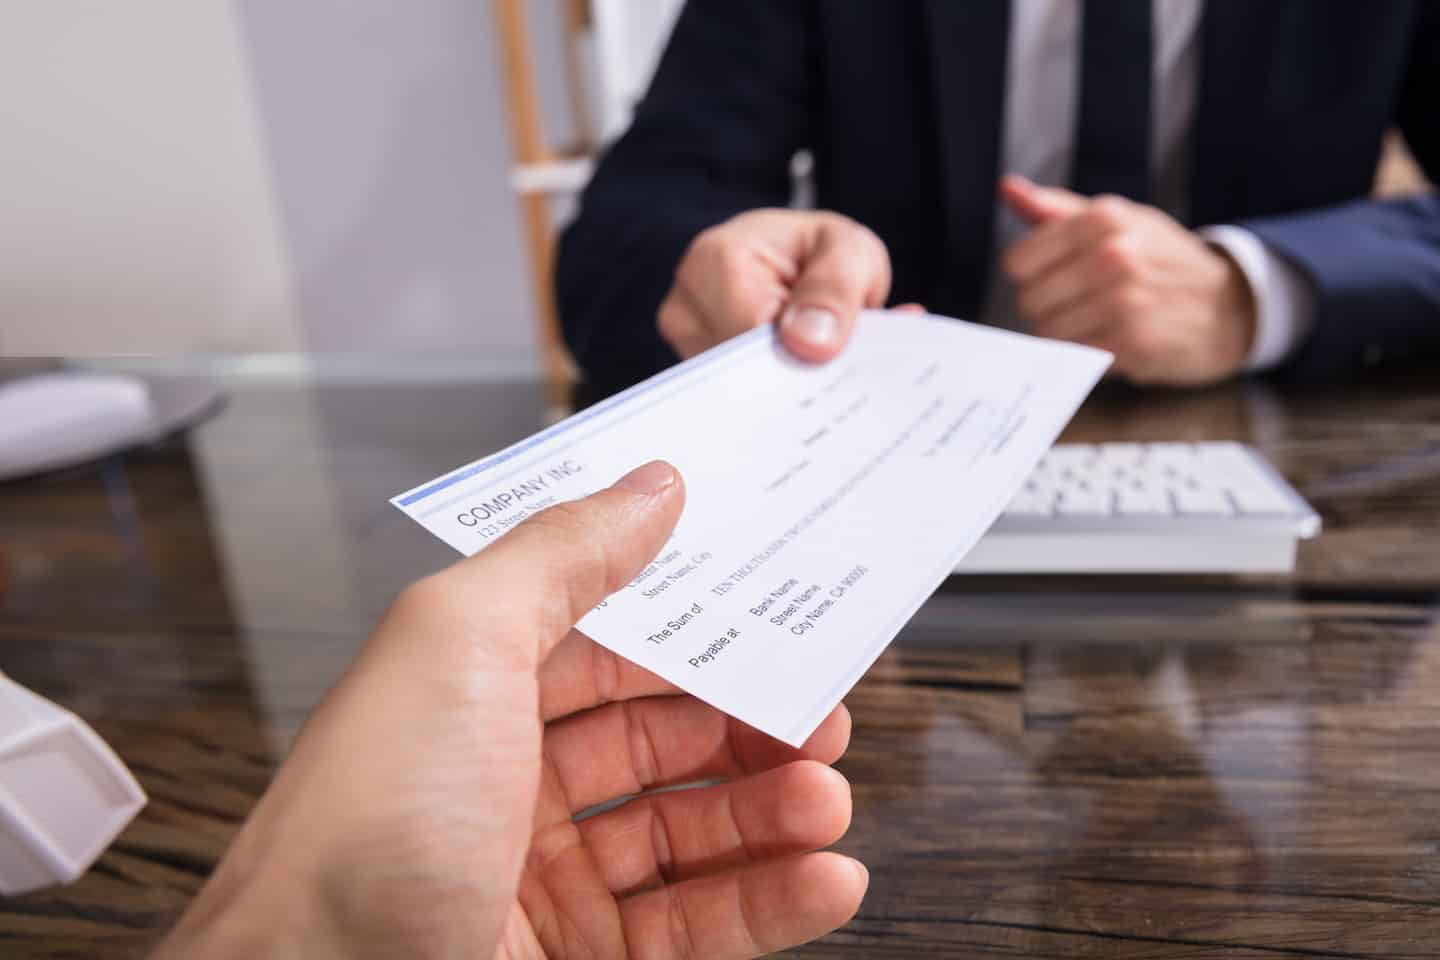 7 Best Places to Cash a Check (Low Fees and Without a Bank